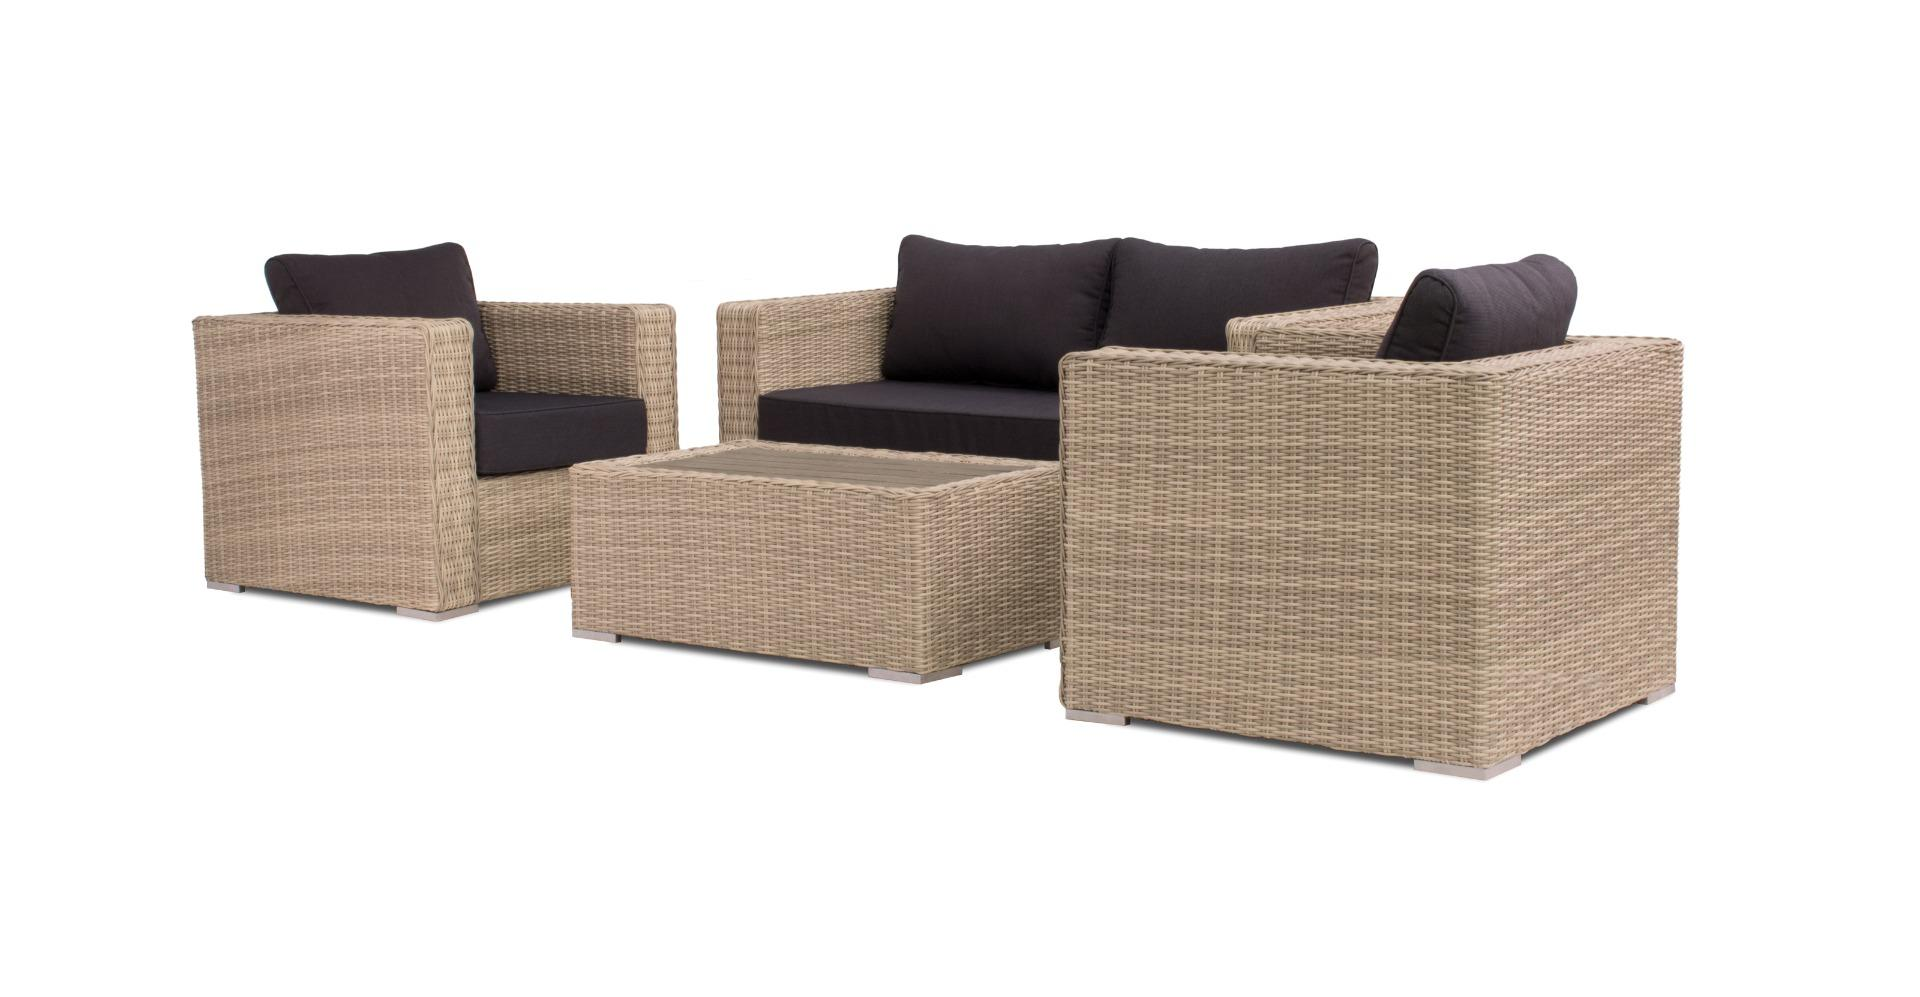 Matino lounge set with table wooden top 4pcs (2x chair 1x bench 1x table)